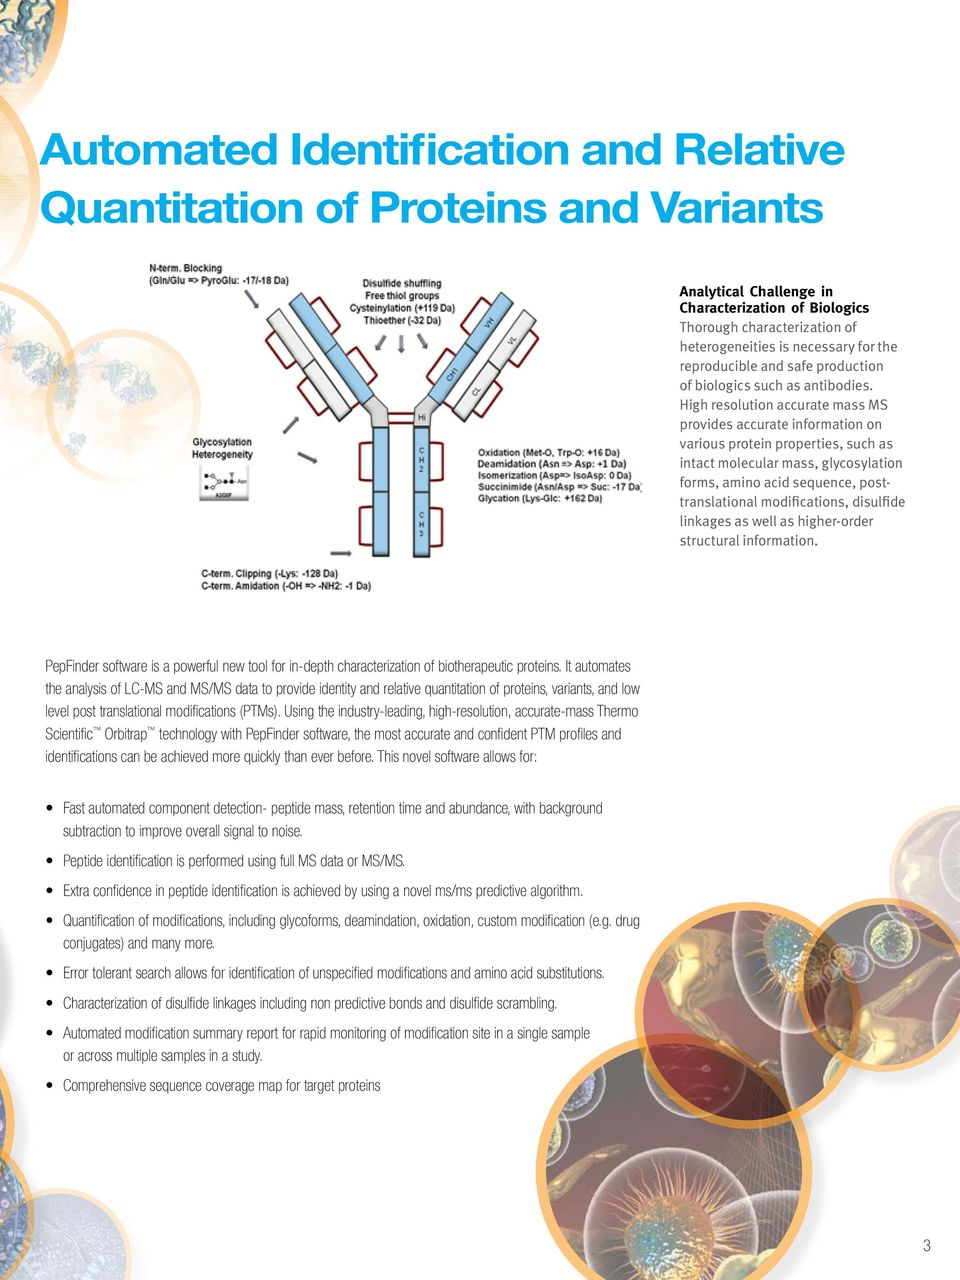 High resolution accurate mass MS provides accurate information on various protein properties, such as intact molecular mass, glycosylation forms, amino acid sequence, posttranslational modifications,